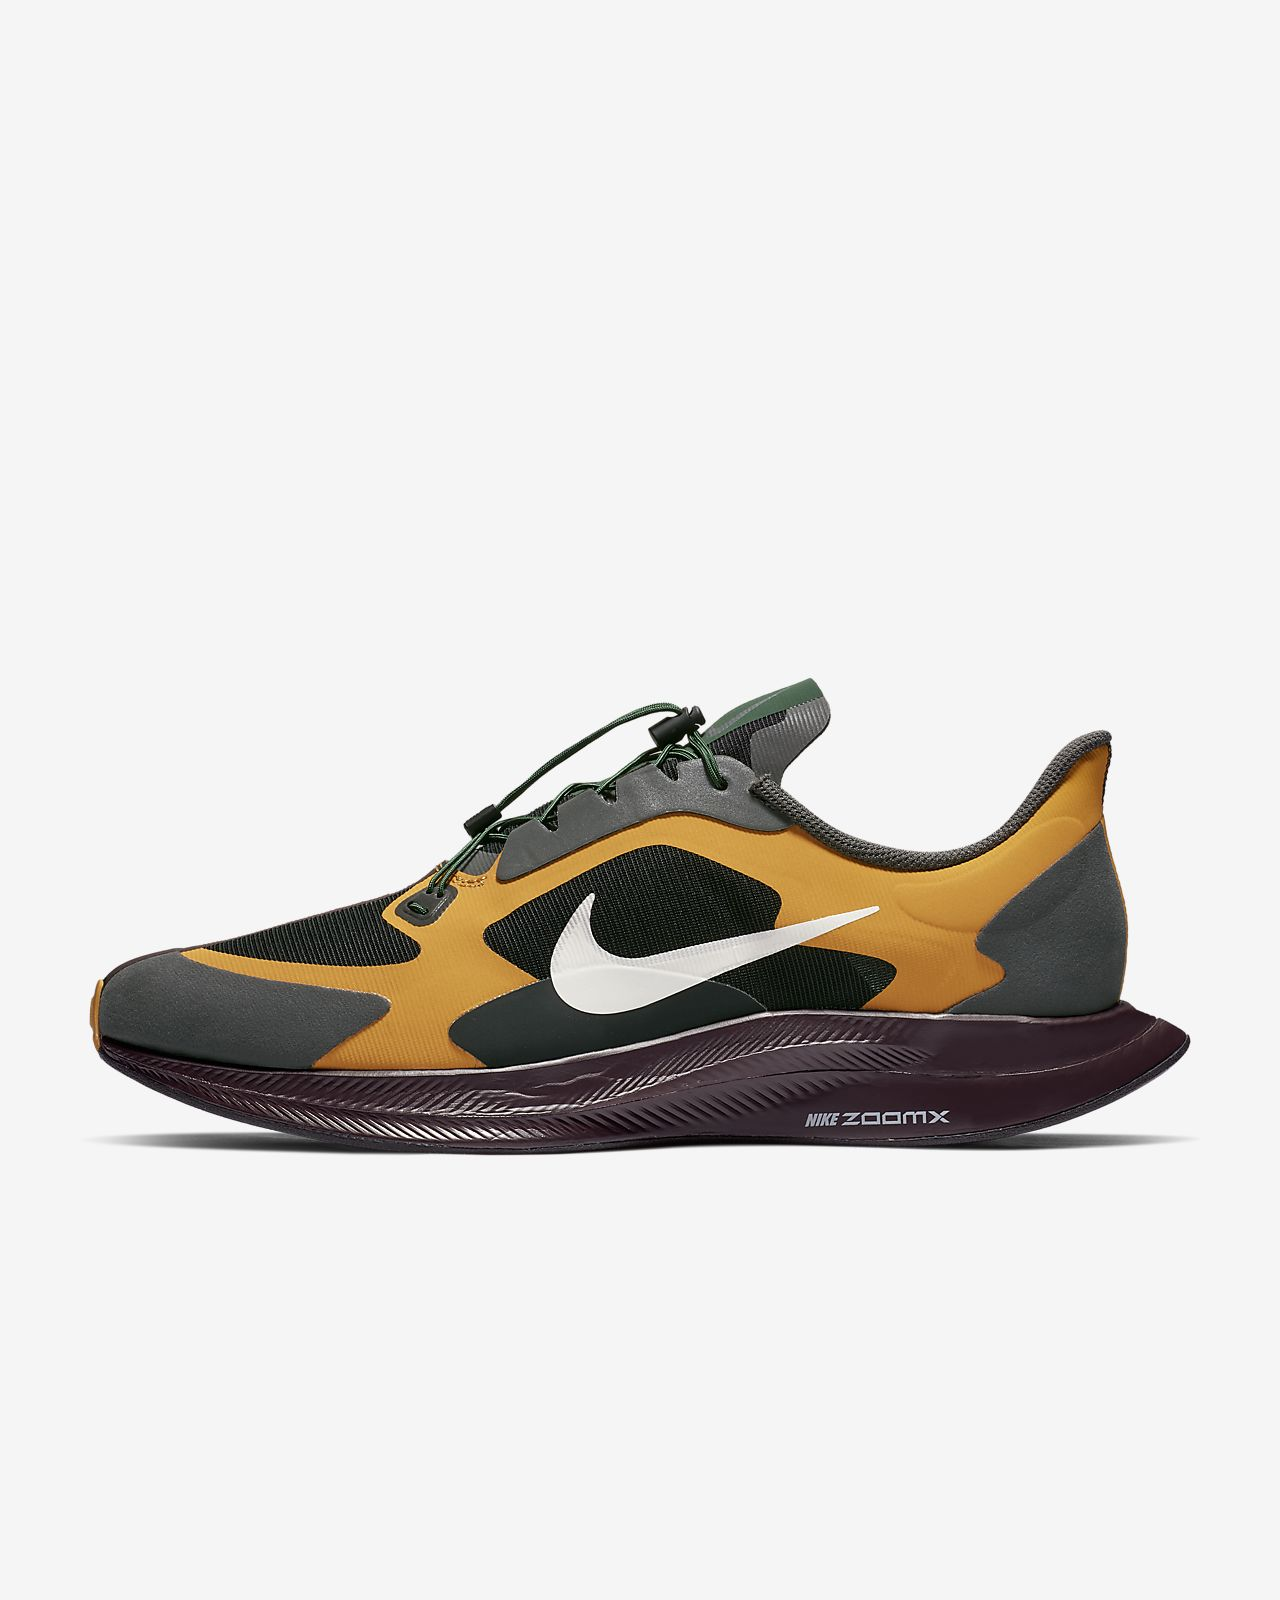 buy online 5babc 0b5e5 ... Nike Gyakusou Zoom Pegasus 35 Turbo Men s Shoe